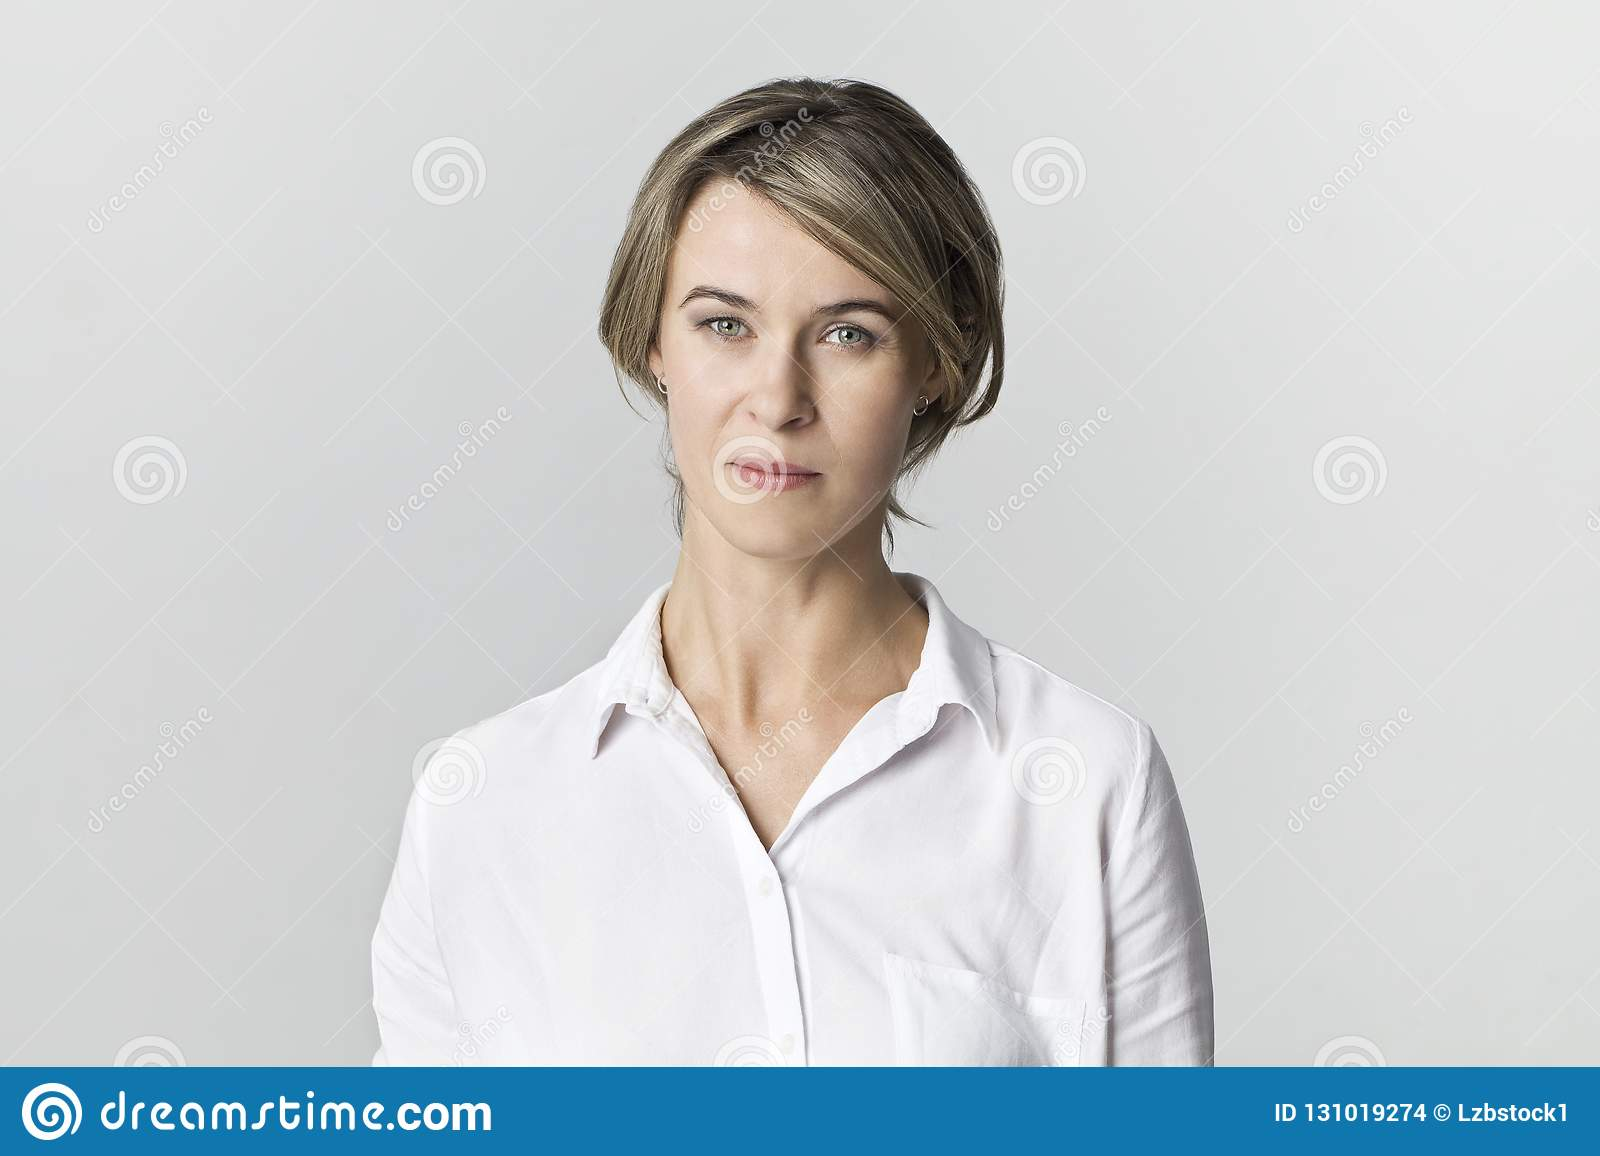 Serious businesswoman standing. Confidence woman in white shirt